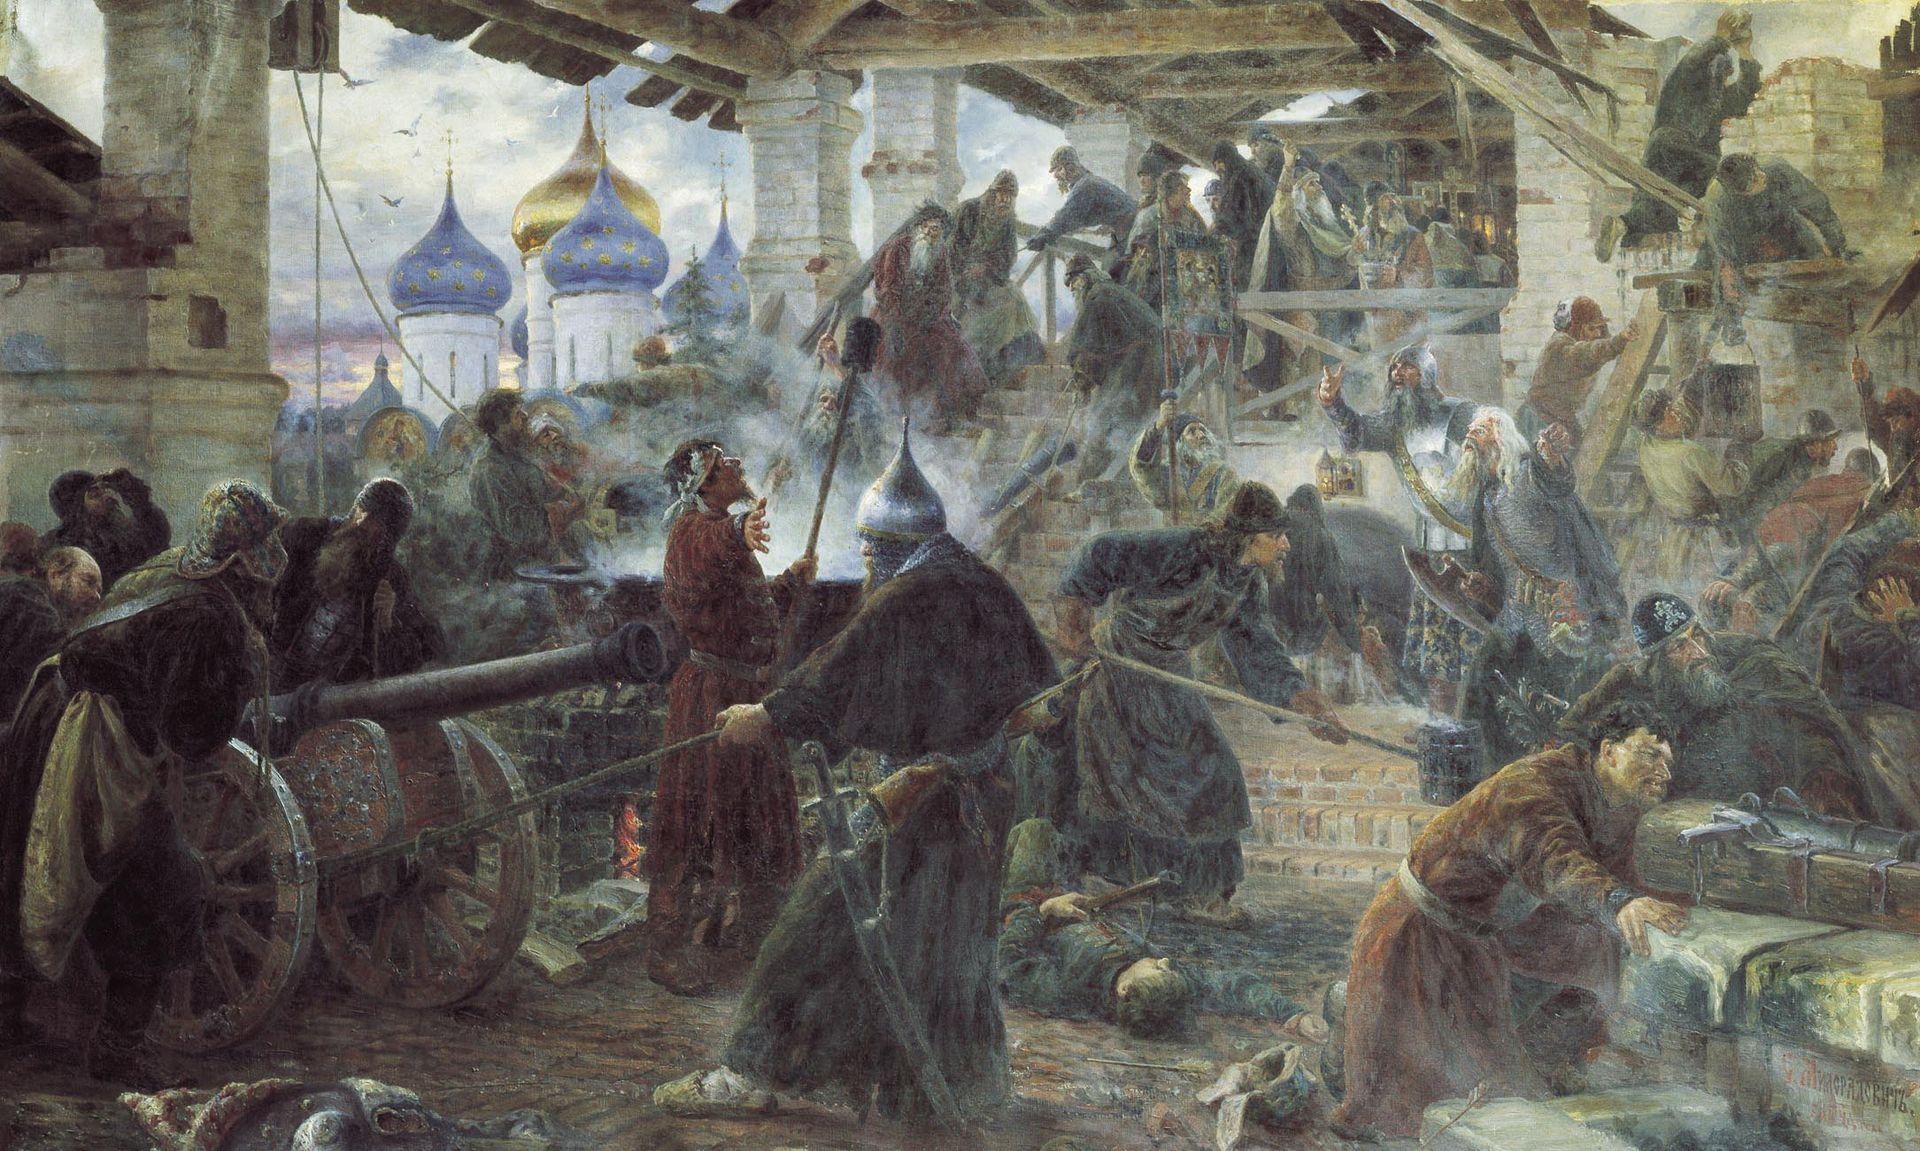 'Defence of the Troitse-Sergieva Lavra against the Poles in 1610' by Sergey Miloradovich (1894)